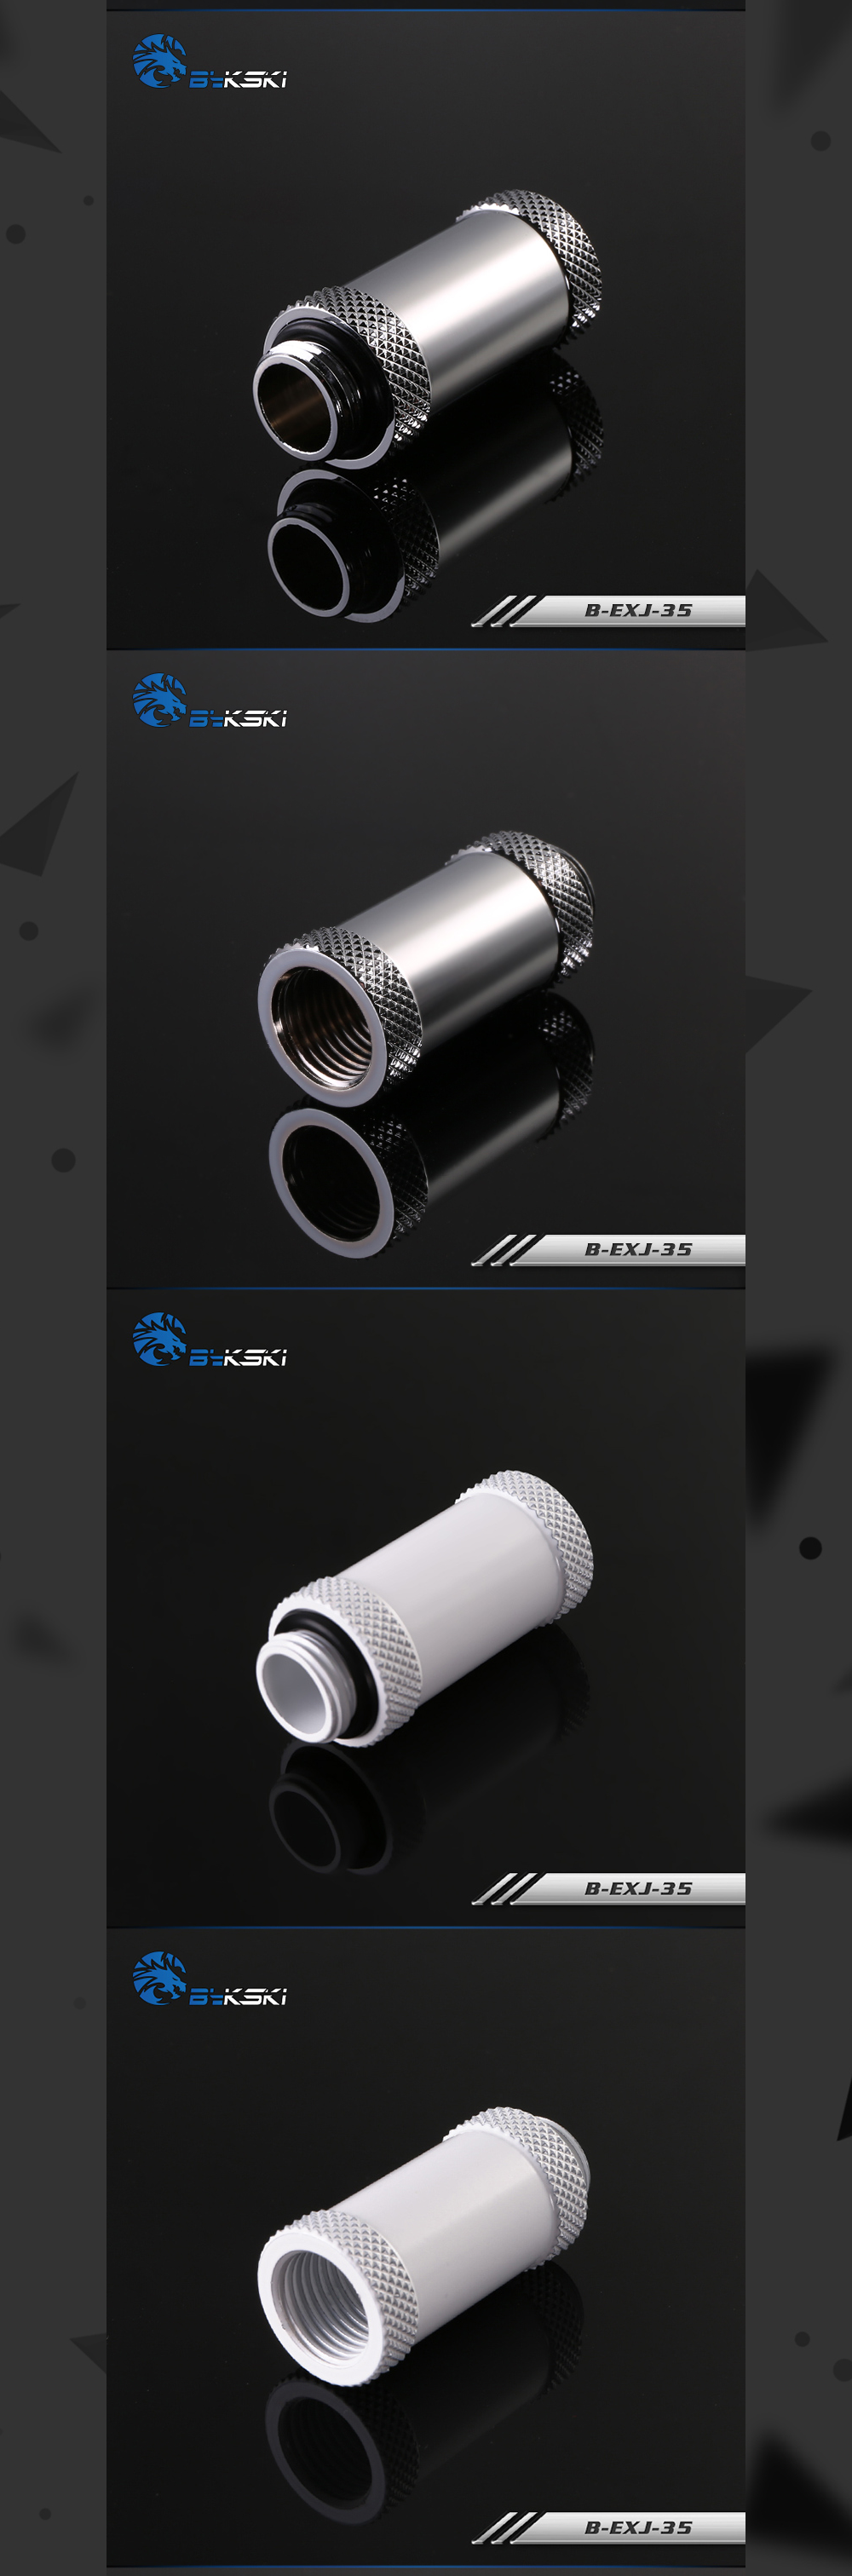 Bykski B-EXJ-35, 35mm Male To Female Extender Fittings, Boutique Diamond Pattern, Multiple Color G1/4 Male To Female Fittings